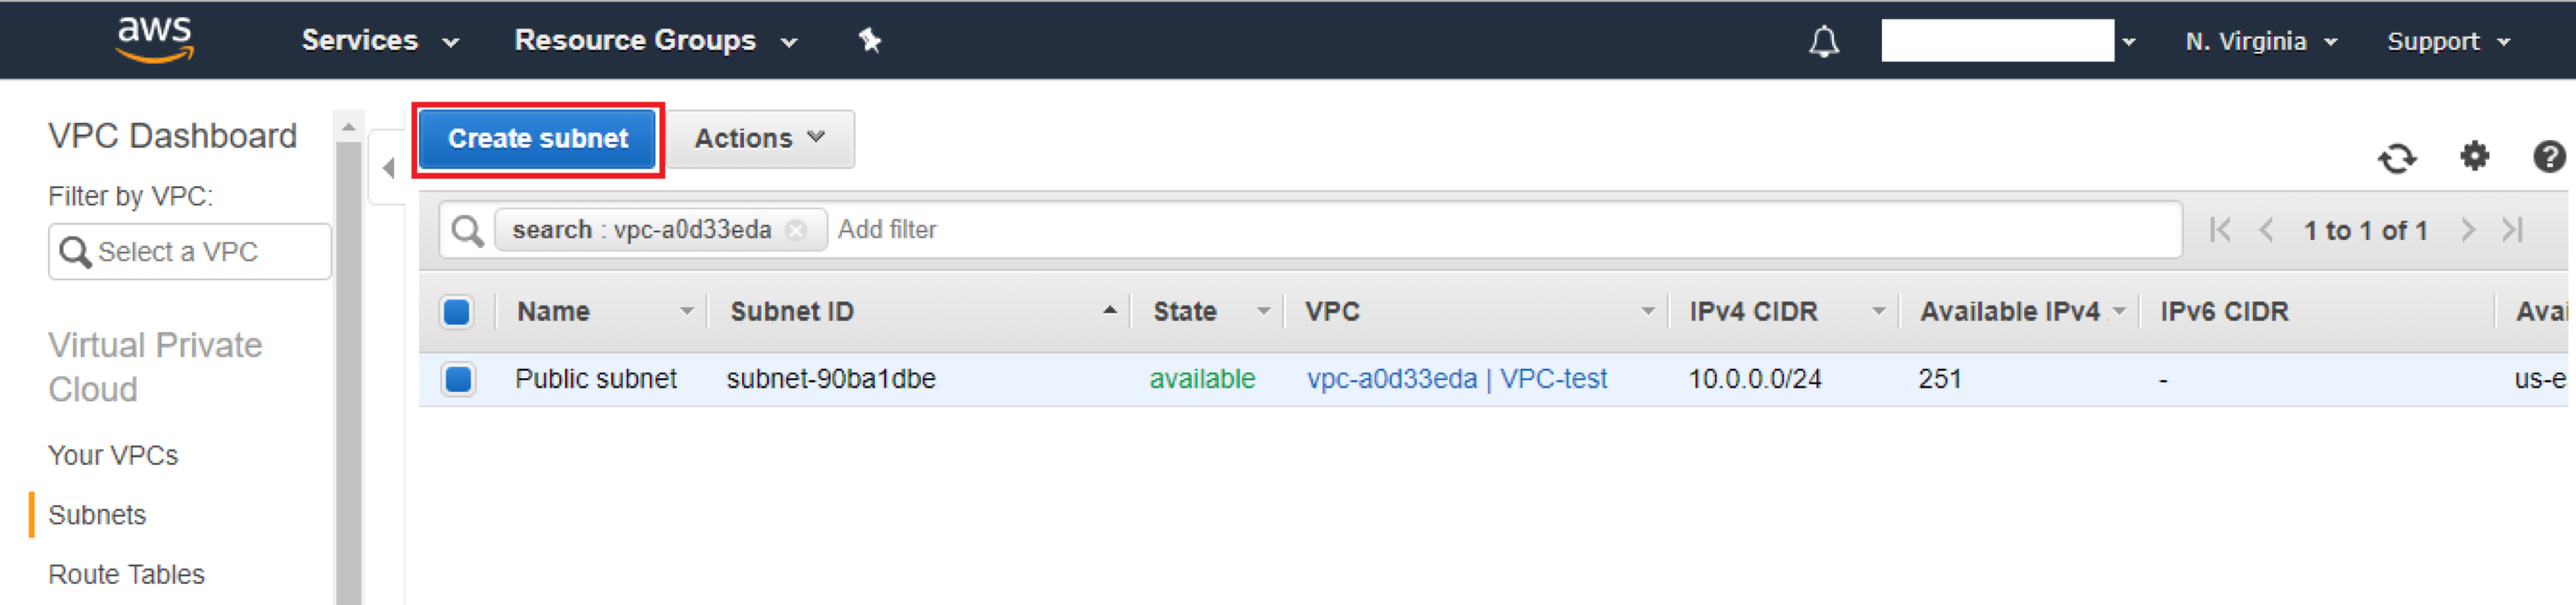 Creating VPC on AWS - Image 7